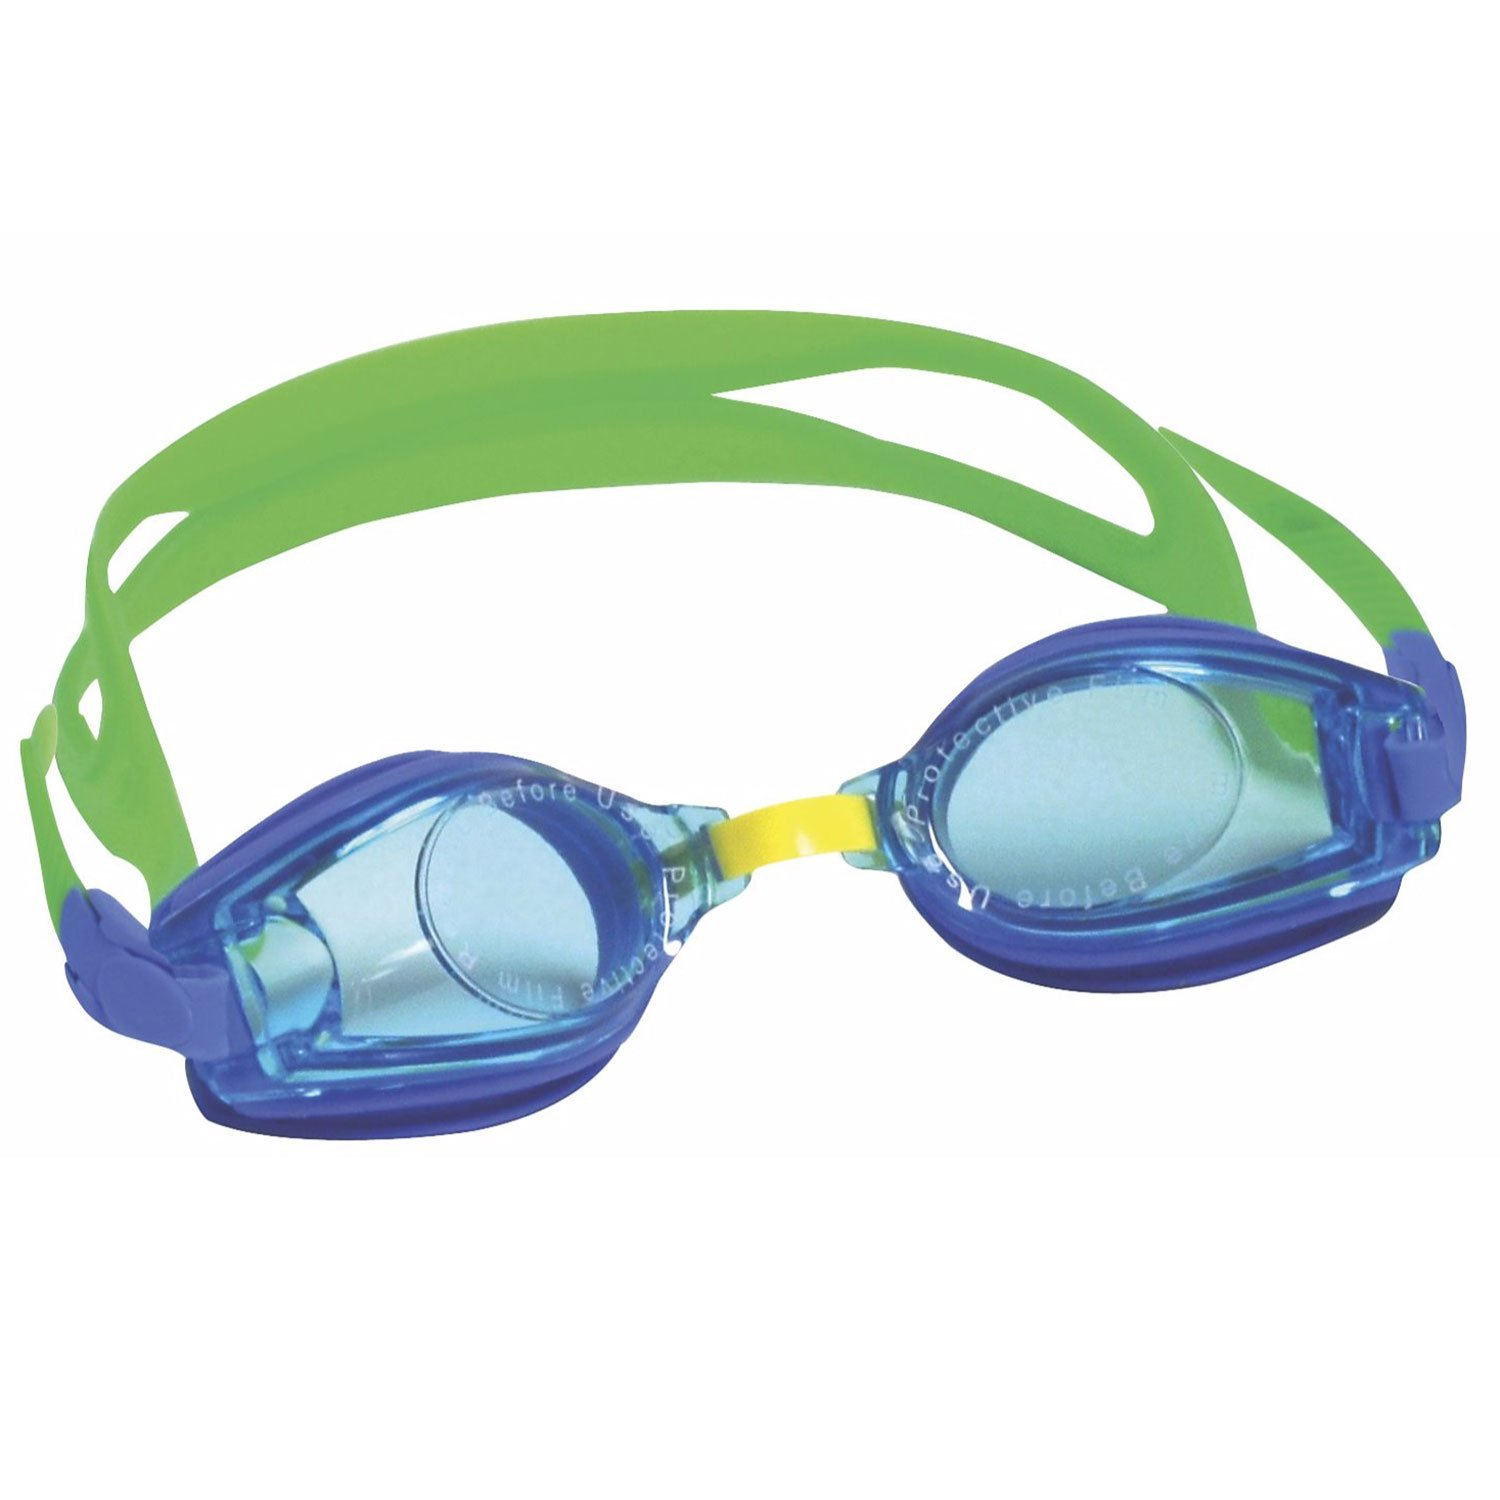 Kids Blue Swim Goggles Anti-Fog, UV Protection Toddler Boys Ages 2-5, Specifically designed for 2-5 year old boys, these... by